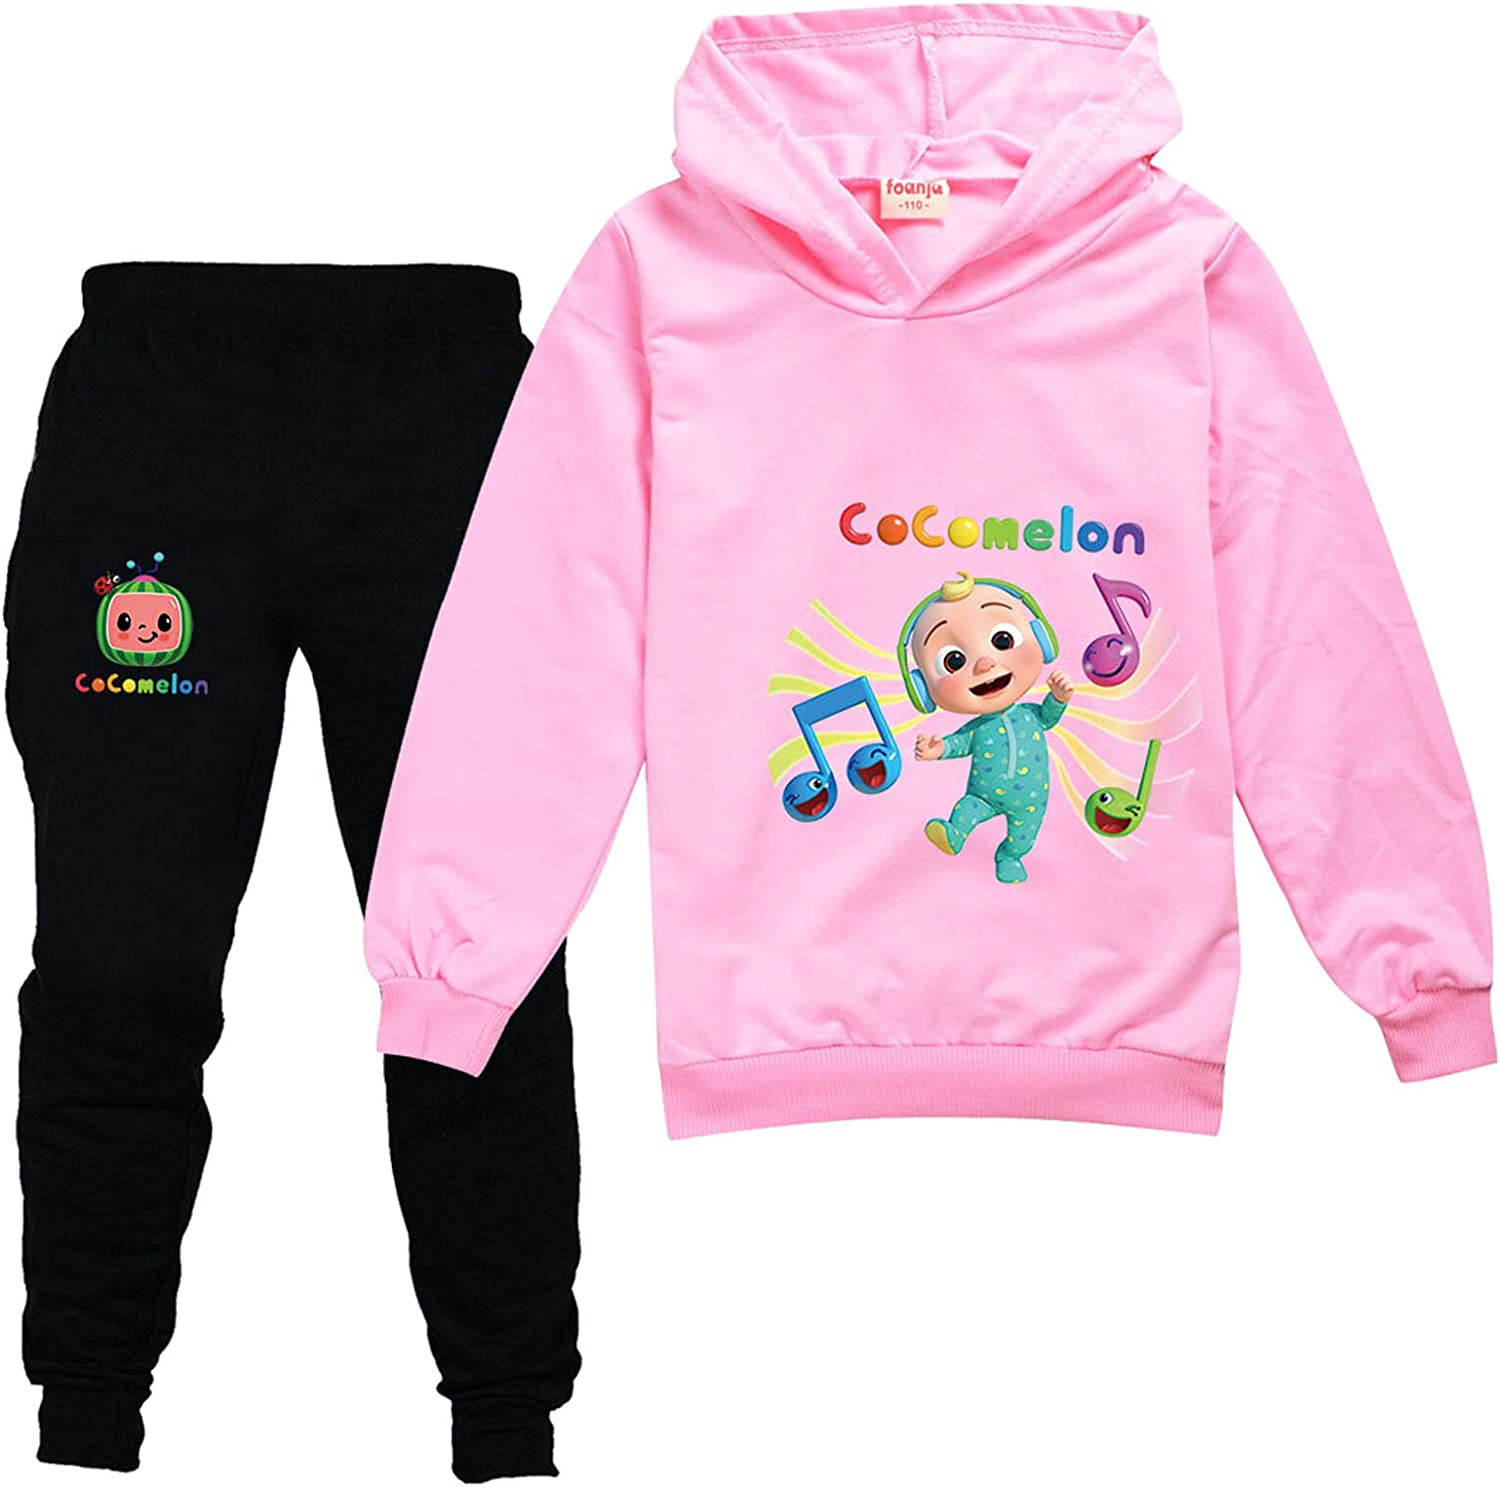 Coco-Melon Youth Pullover Hoodies and Sweatpants Set Kids Clothes 2-Piece Sweatshirt Set for Boys and Girls